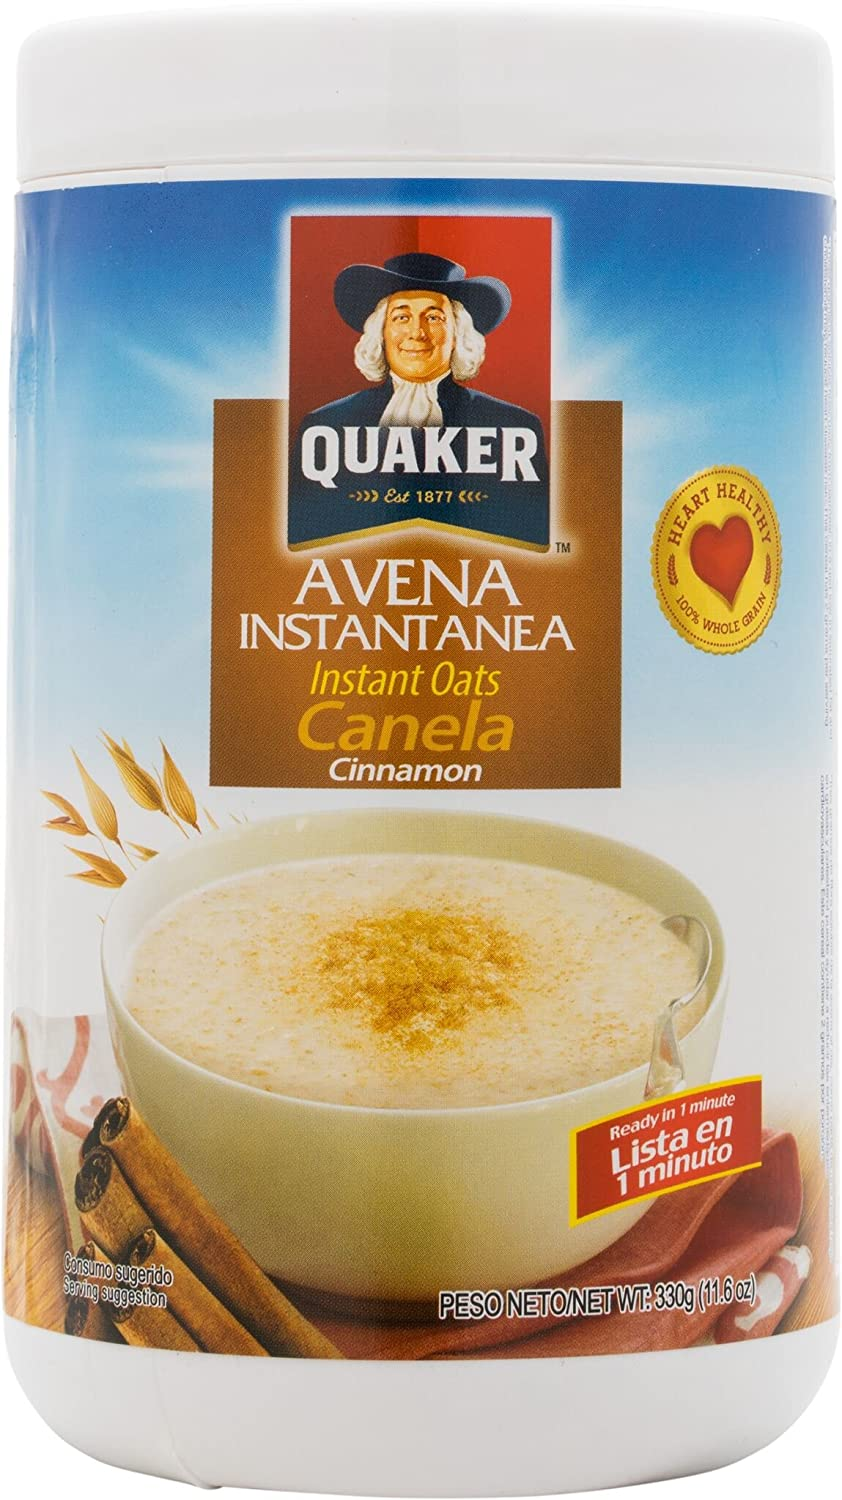 Amazon.com : Quaker Avena with Cinnamon 11.6 OZ Instant Oats Cinnamon Cereal Mix : Oatmeal Breakfast Cereals : Grocery & Gourmet Food